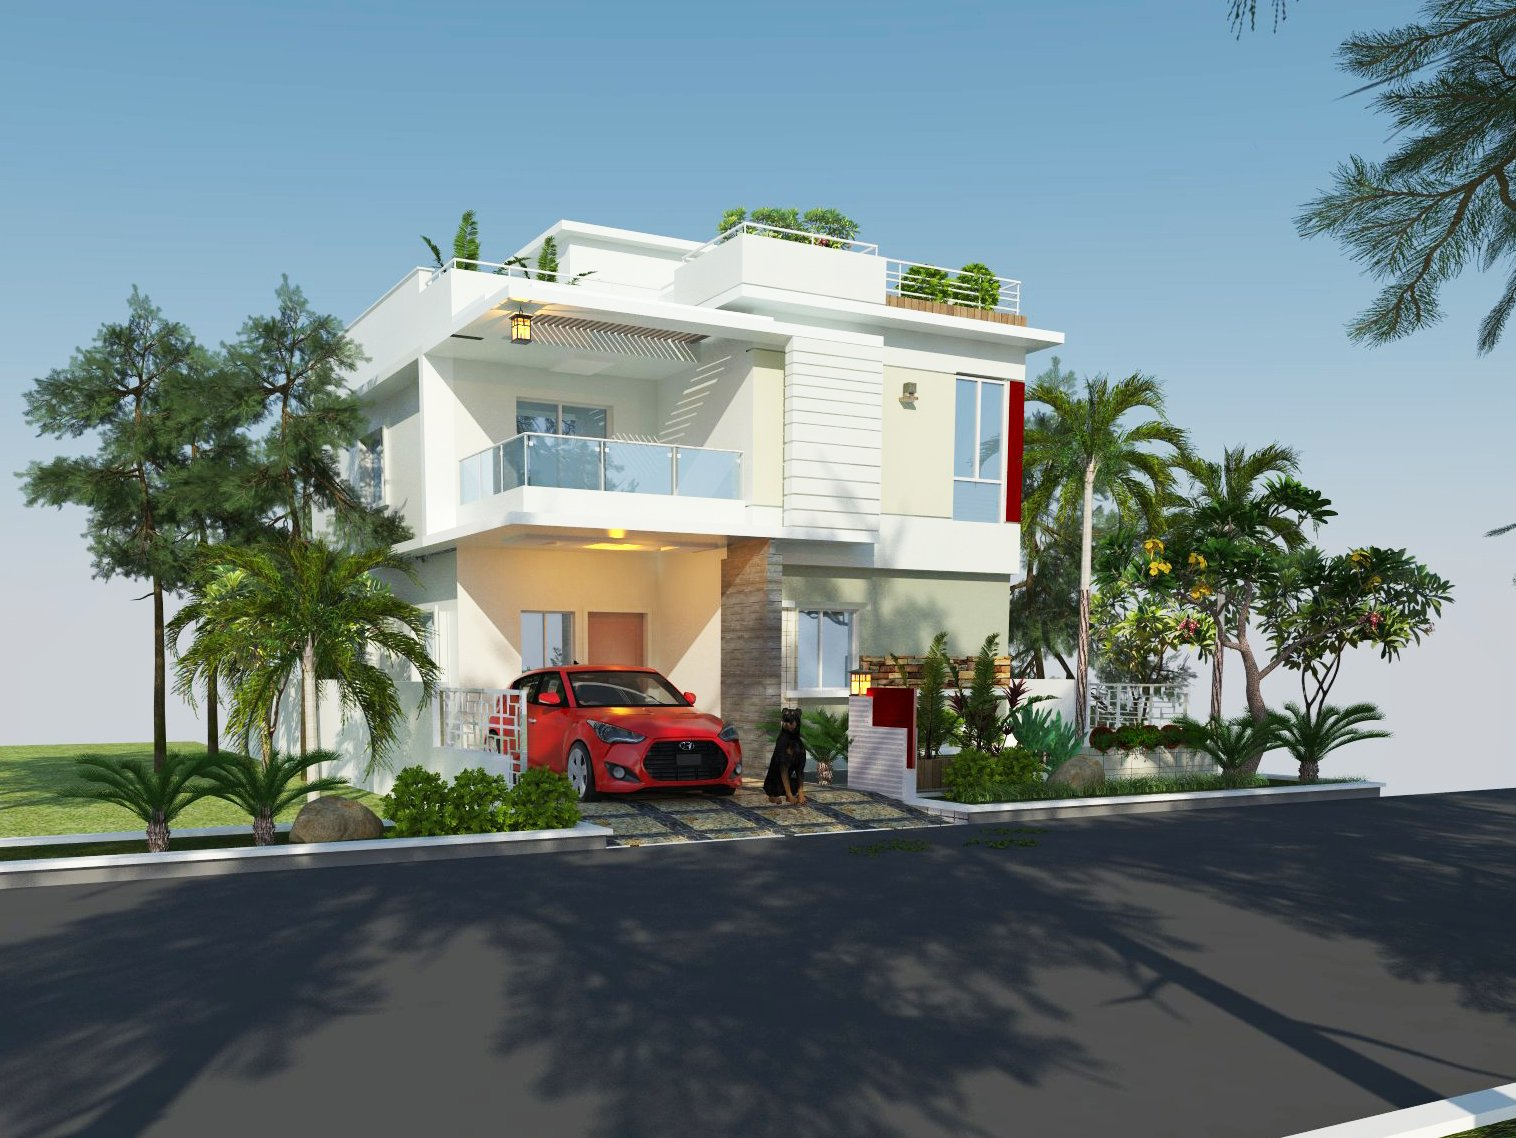 villas for sale in arv vivatellapur,hyderabad - real estate in tellapur